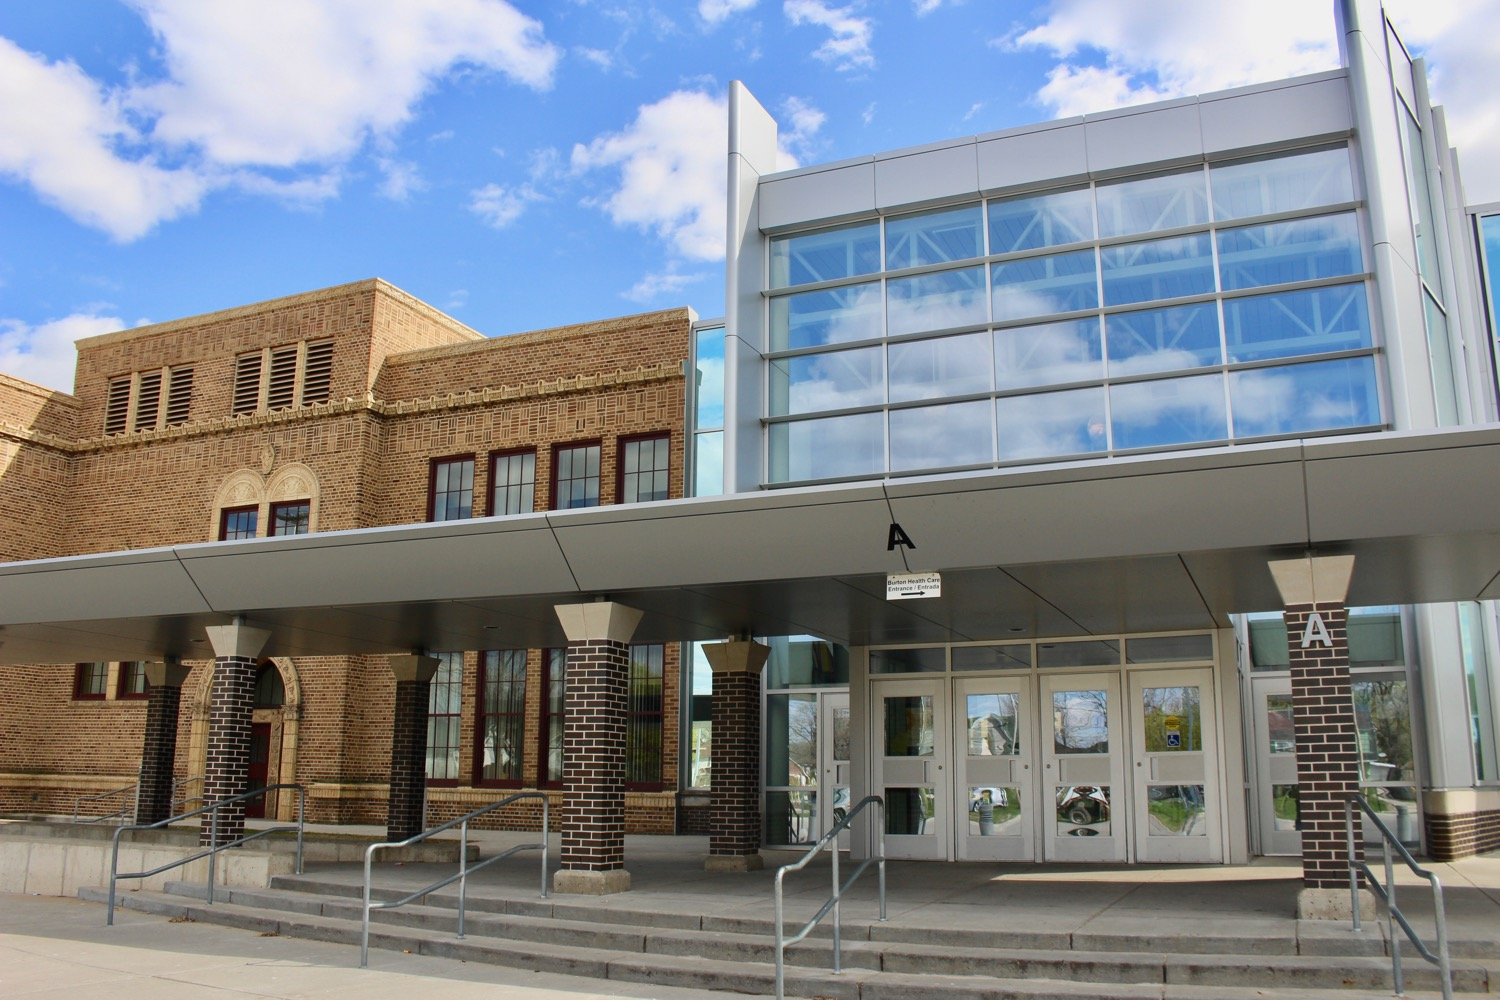 BEAUTIFUL BURTON SCHOOL DESIGNED BY HENRY H. TURNER WITH A NEW MODERN ADDITION THAT IS COMPLEMENTARY TO THE OLD BUILDING.